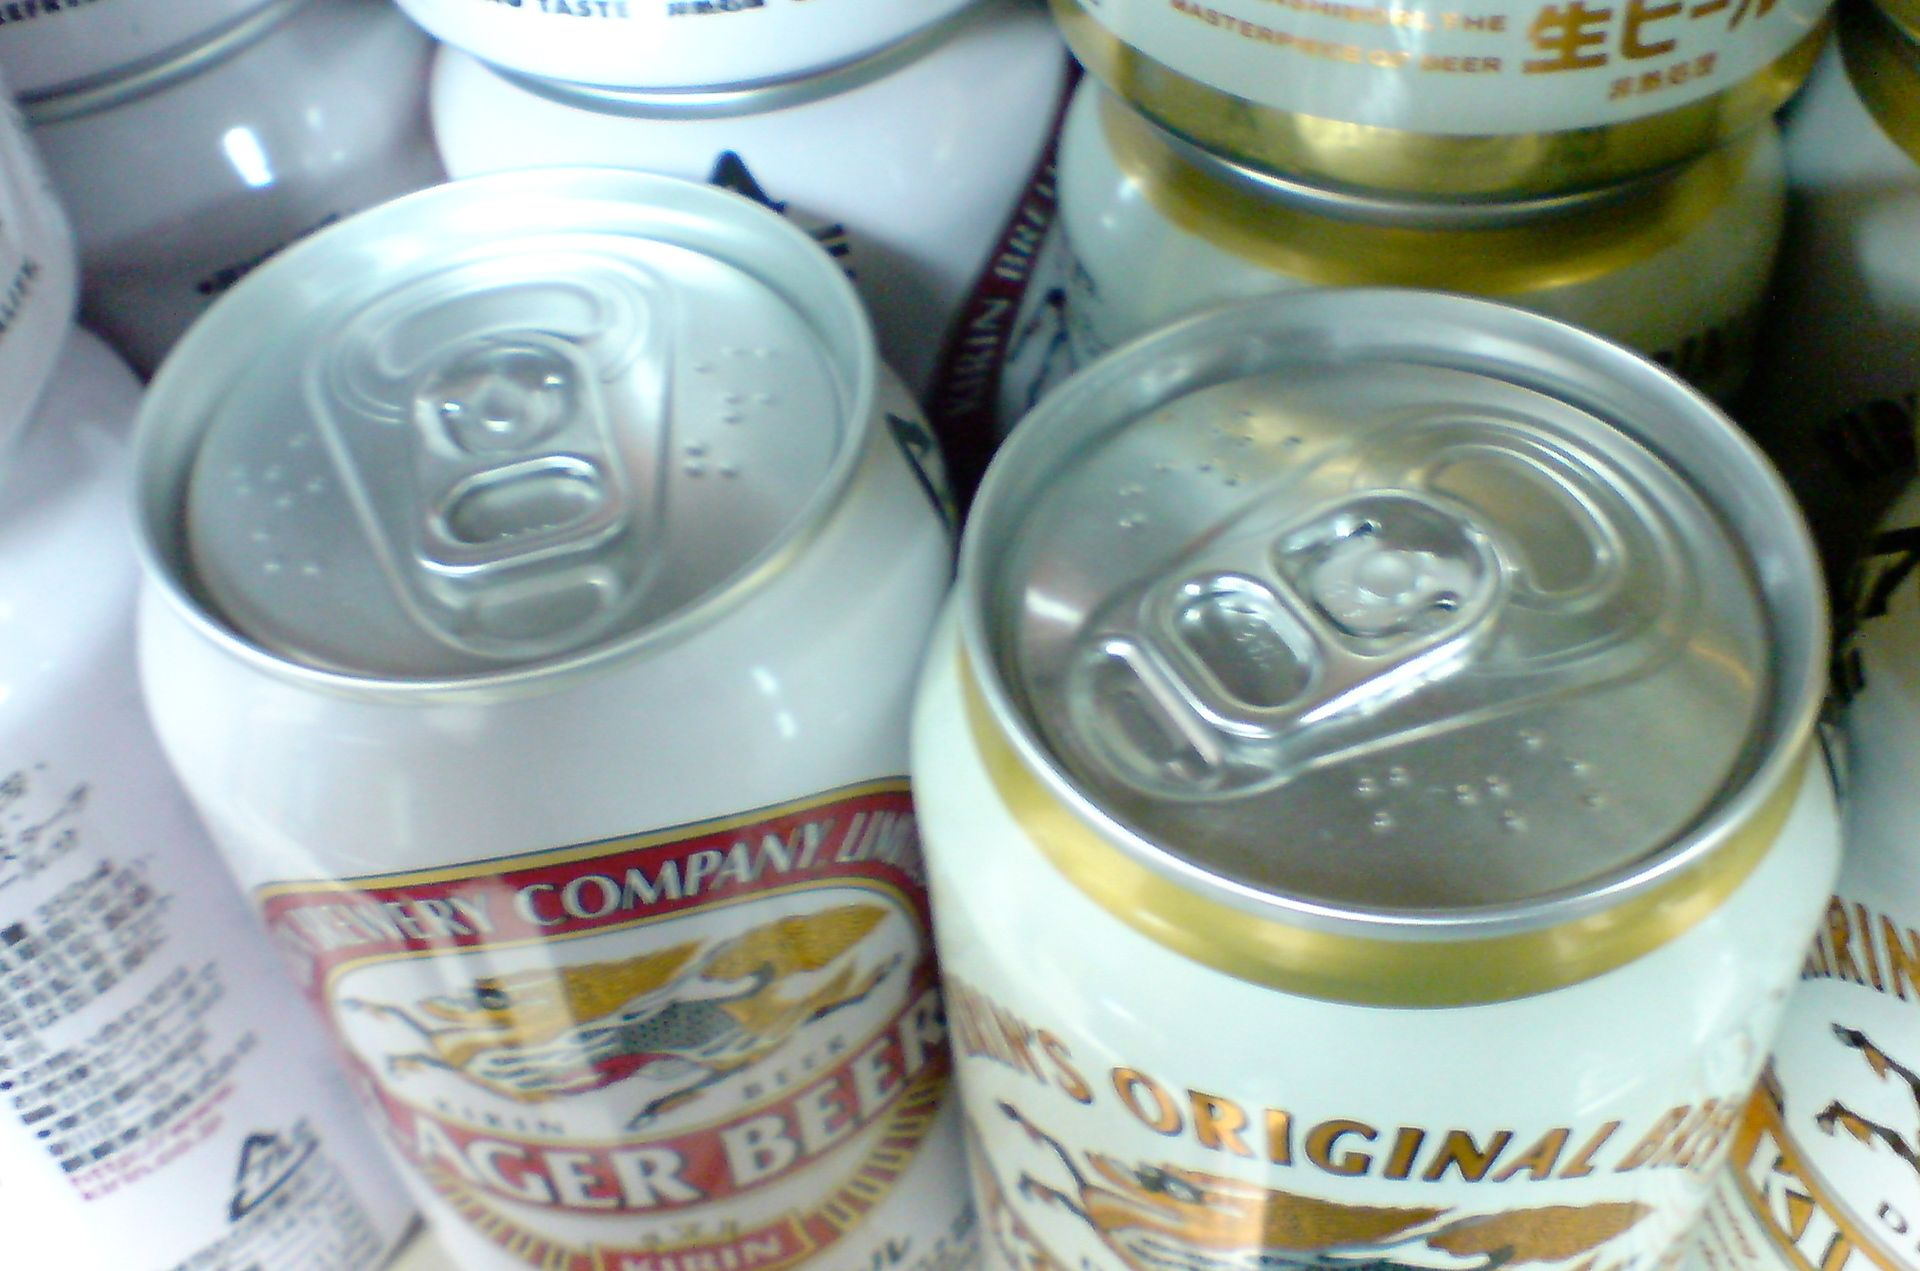 Markings on beer cans